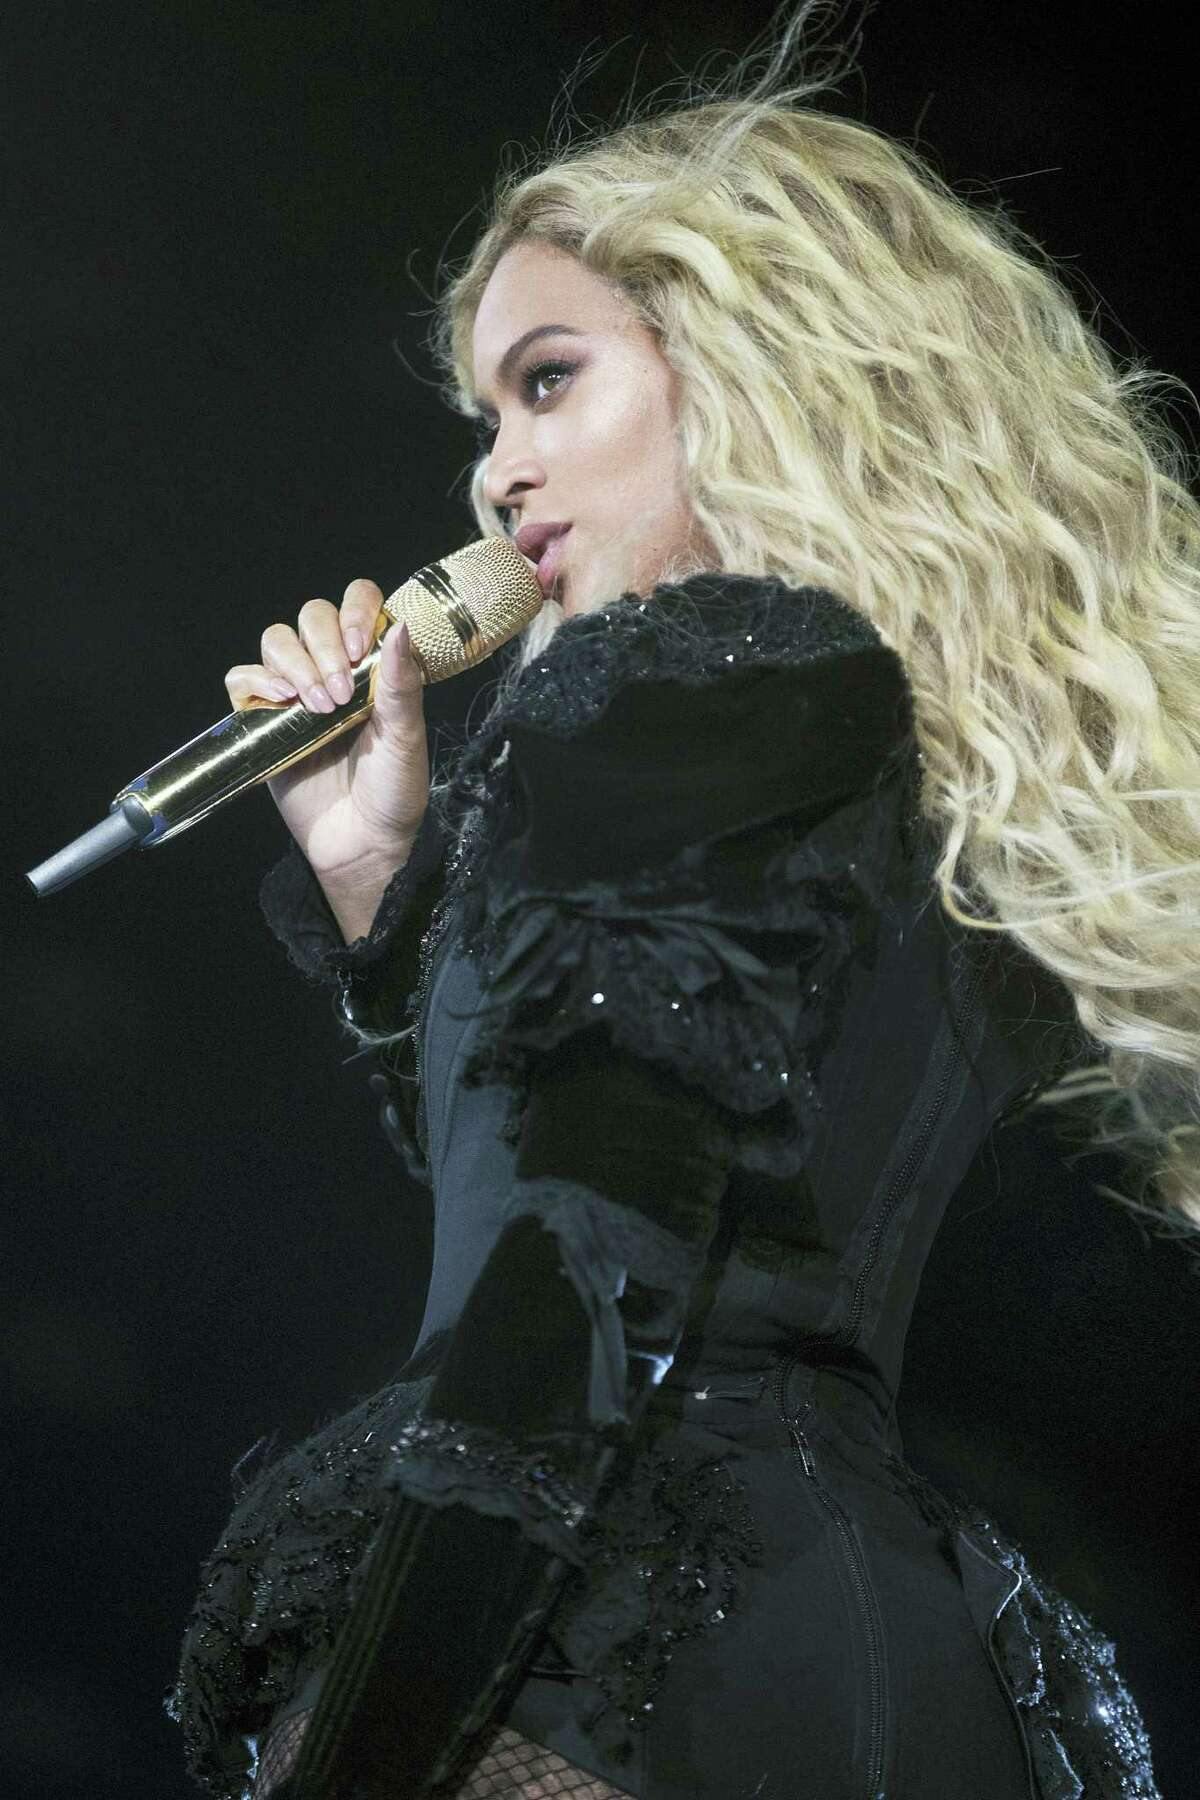 """This photo taken Sept. 24, 20016 shows Beyonce performing during the Formation World Tour at Mercedes-Benz Superdome, in New Orleans. Beyoncé wrapped up her """"Formation World Tour"""" with onstage assists from Jay Z, Kendrick Lamar and Serena Williams, while Hugh Jackman, Tyler Perry and Frank Ocean watched from the crowd."""